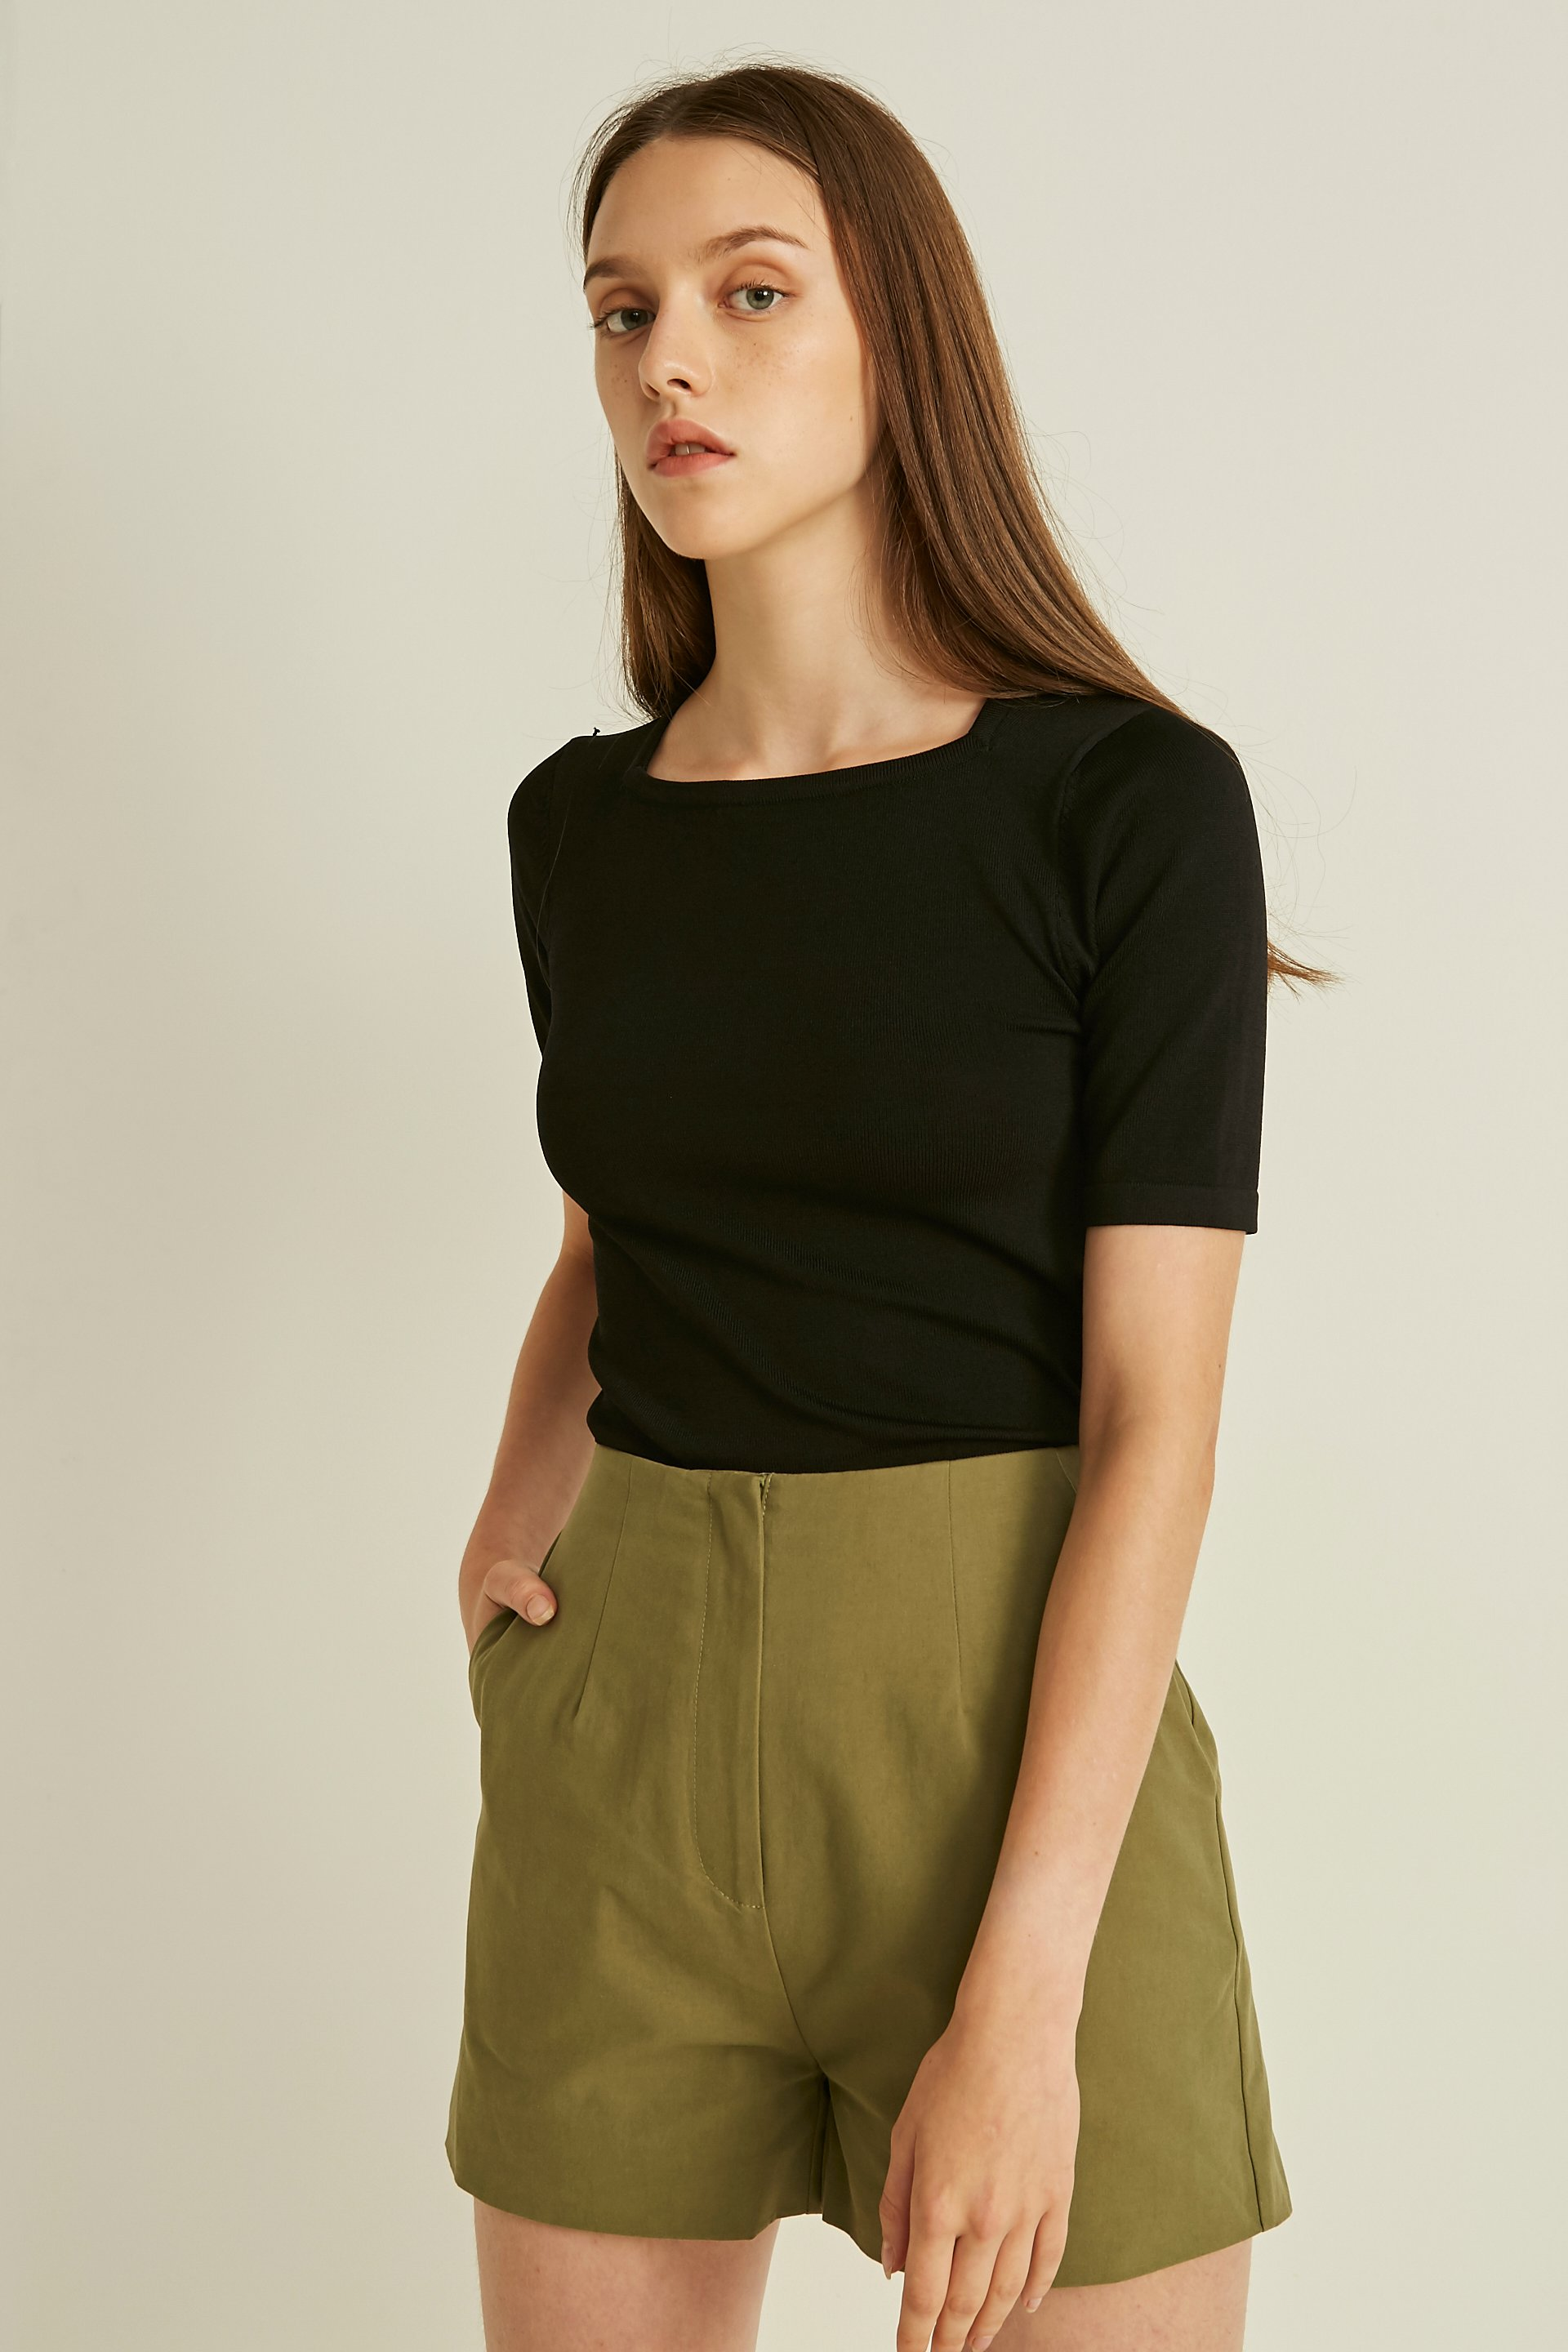 Square-Neck Sleeved Knit Top